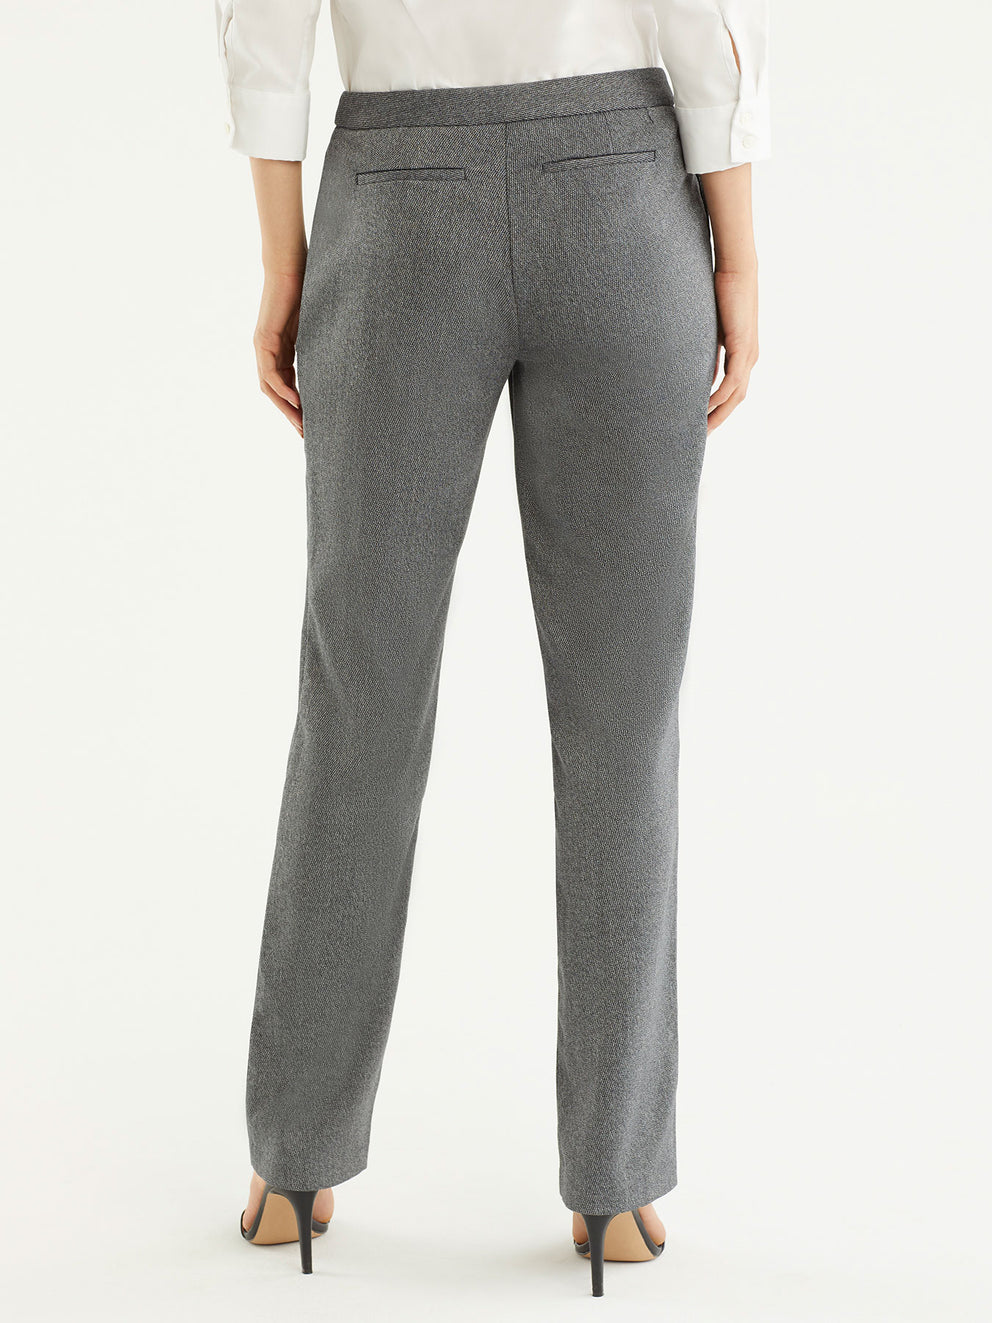 The Jones New York Broken Twill Sydney Pant in color Pewter Ivory - Image Position 3